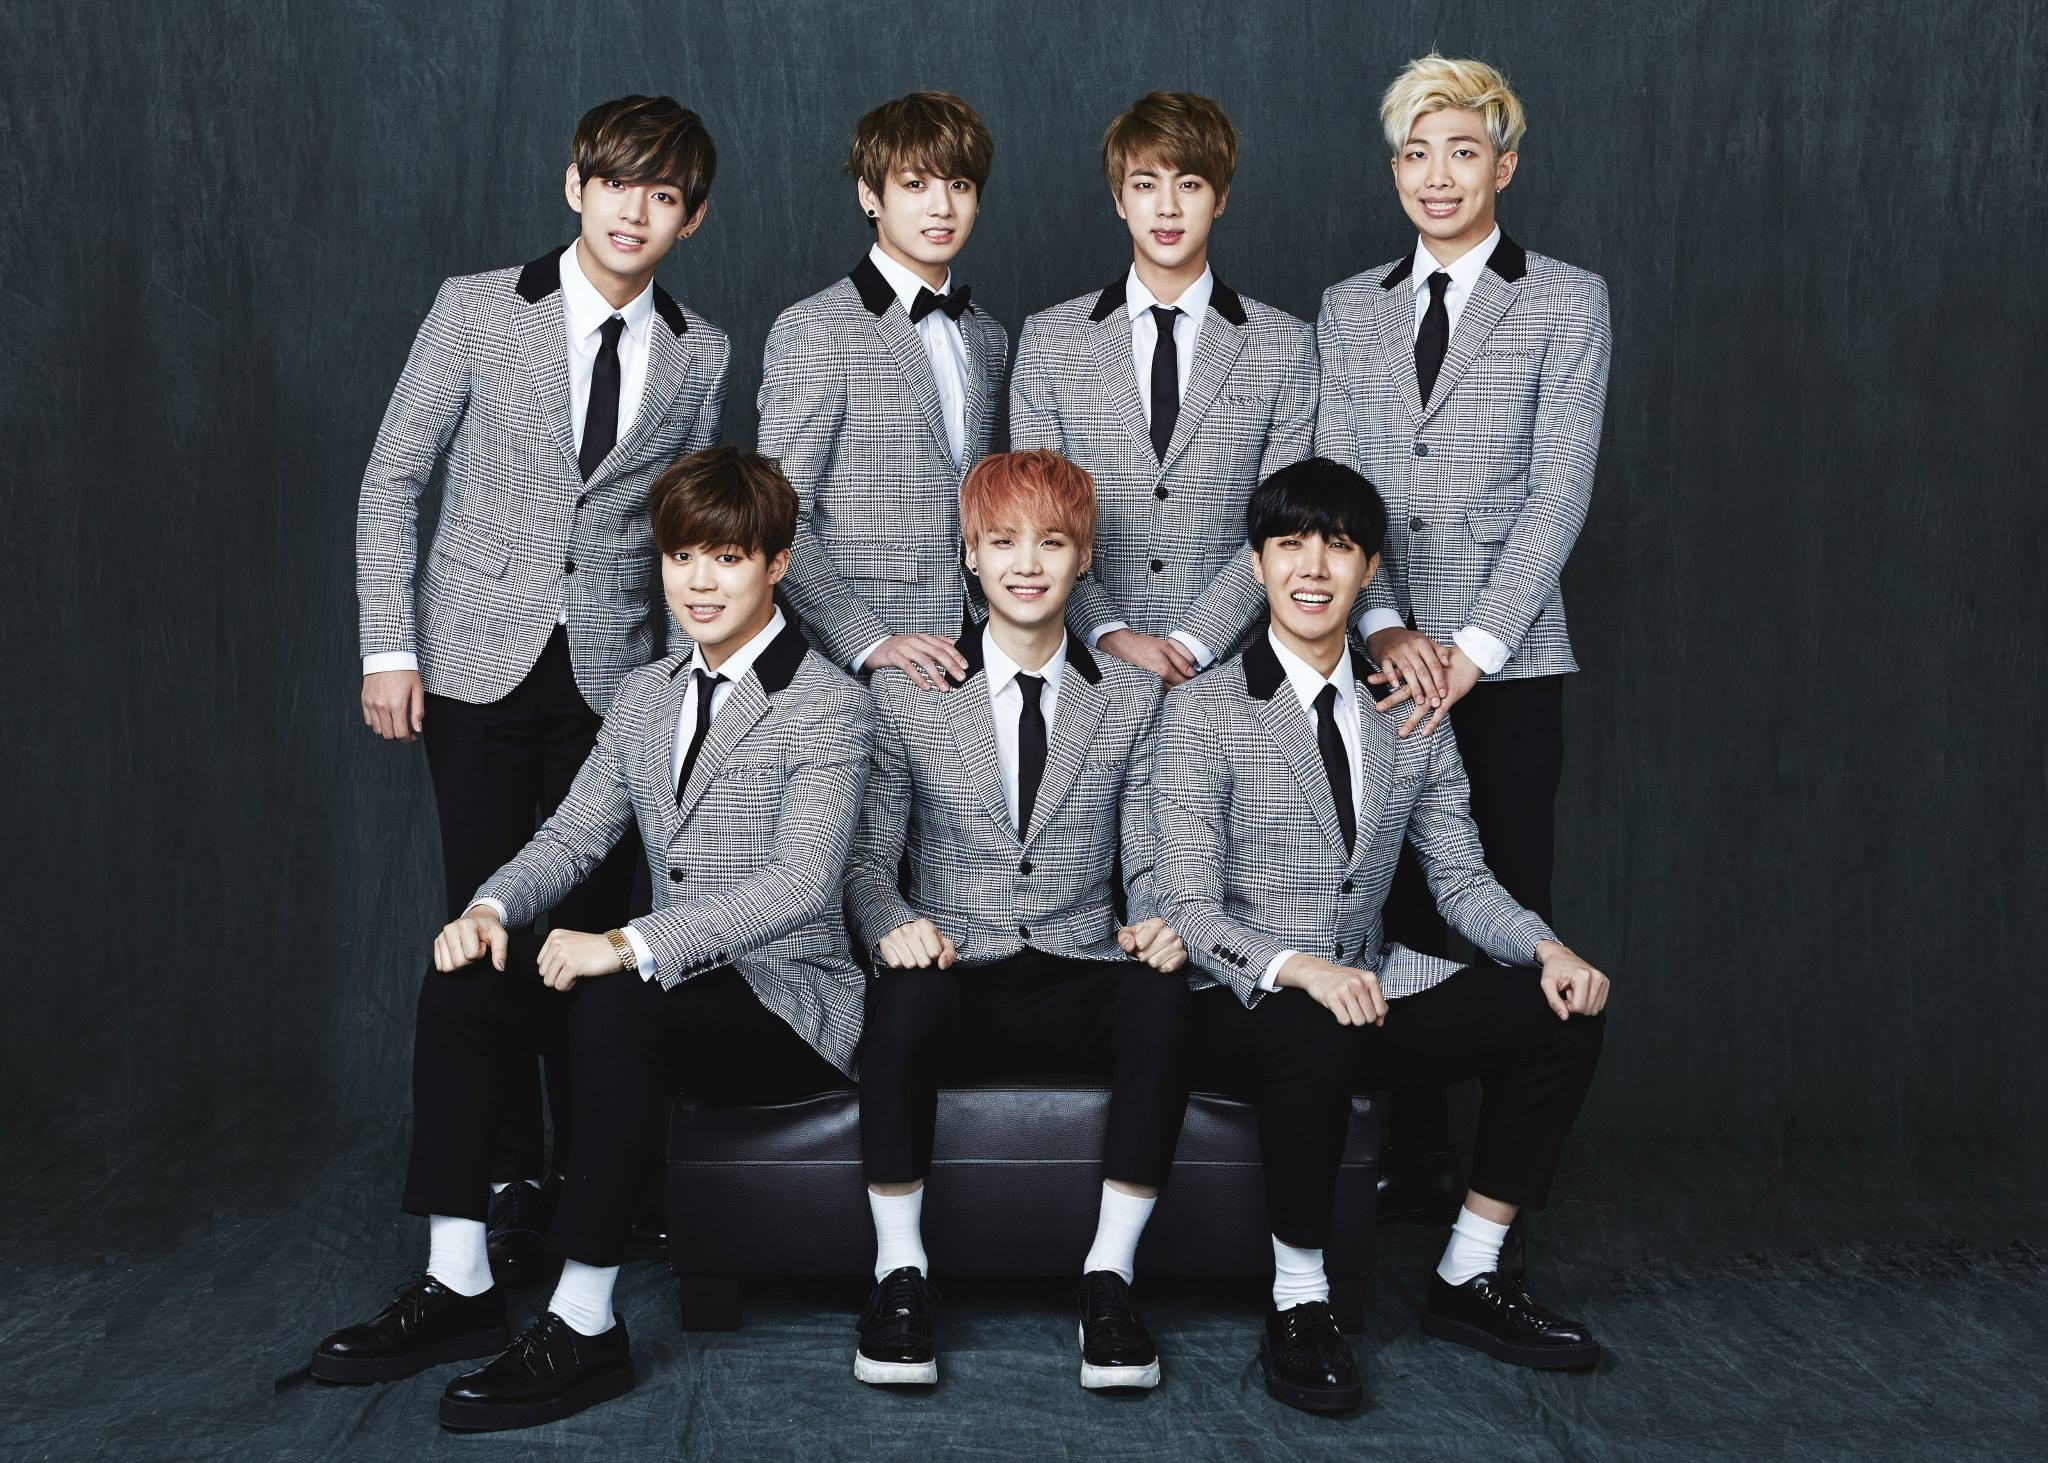 bts wallpapers 71 images